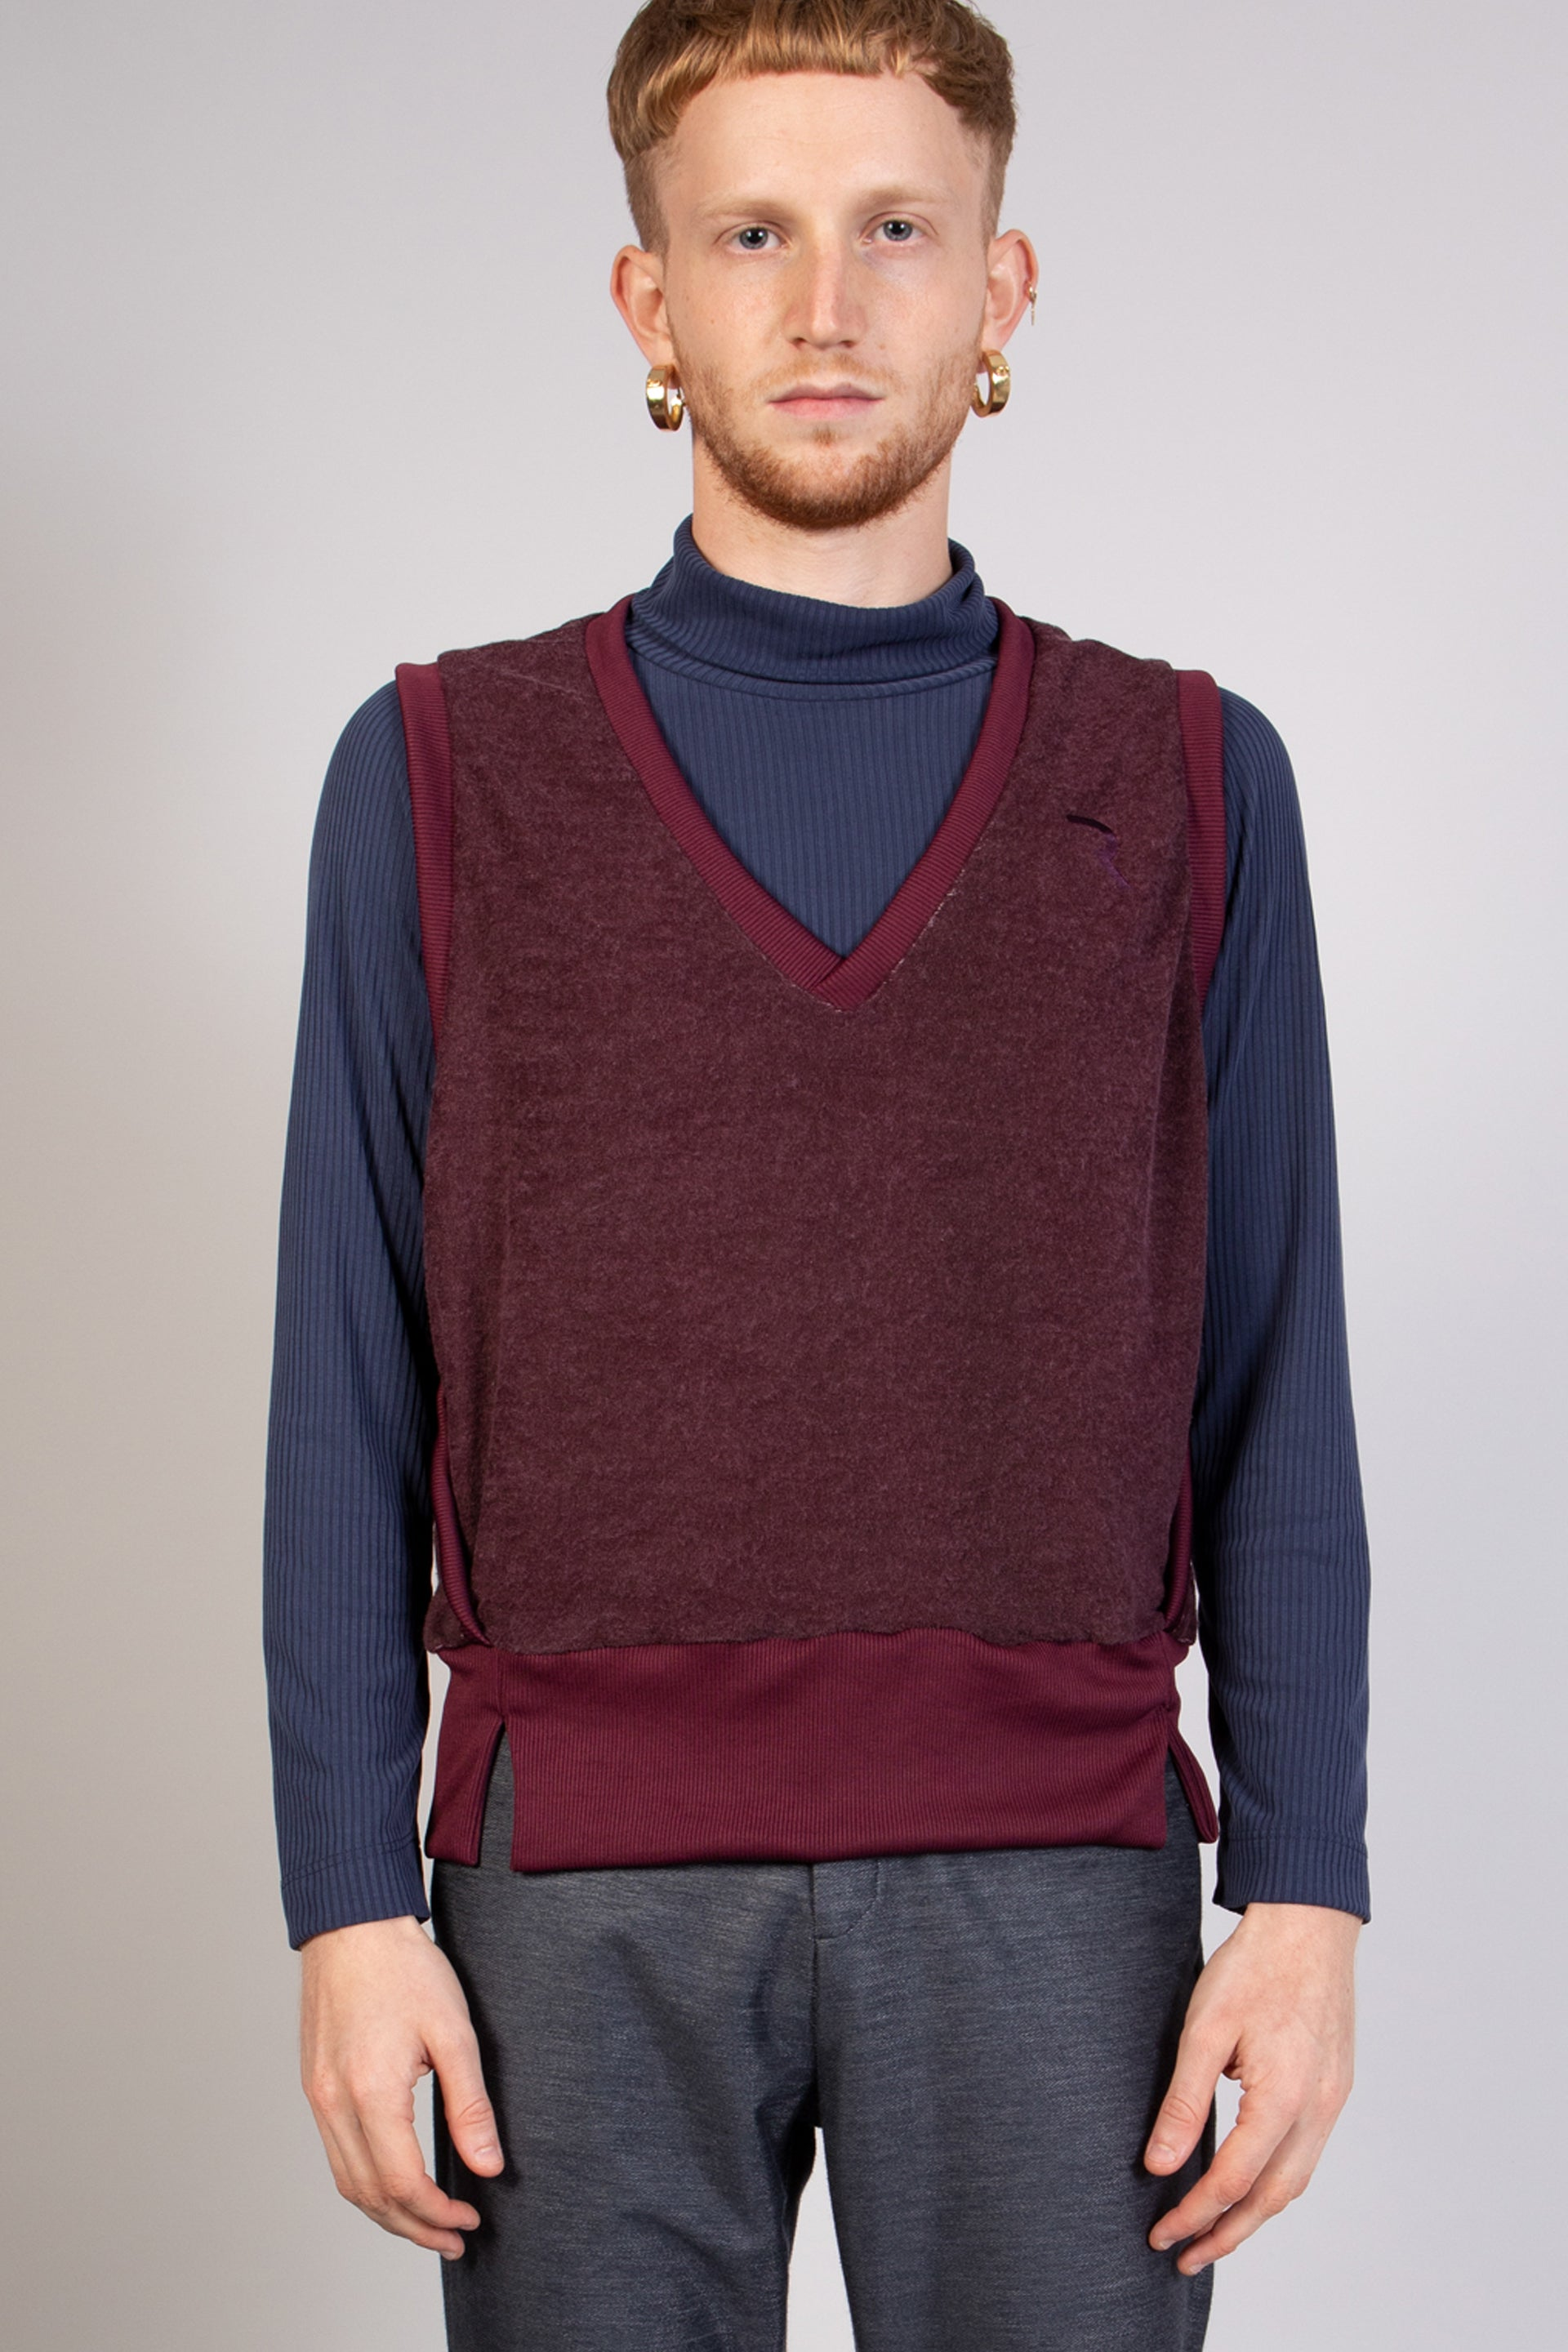 PAUL bordo sweater - heroic-online